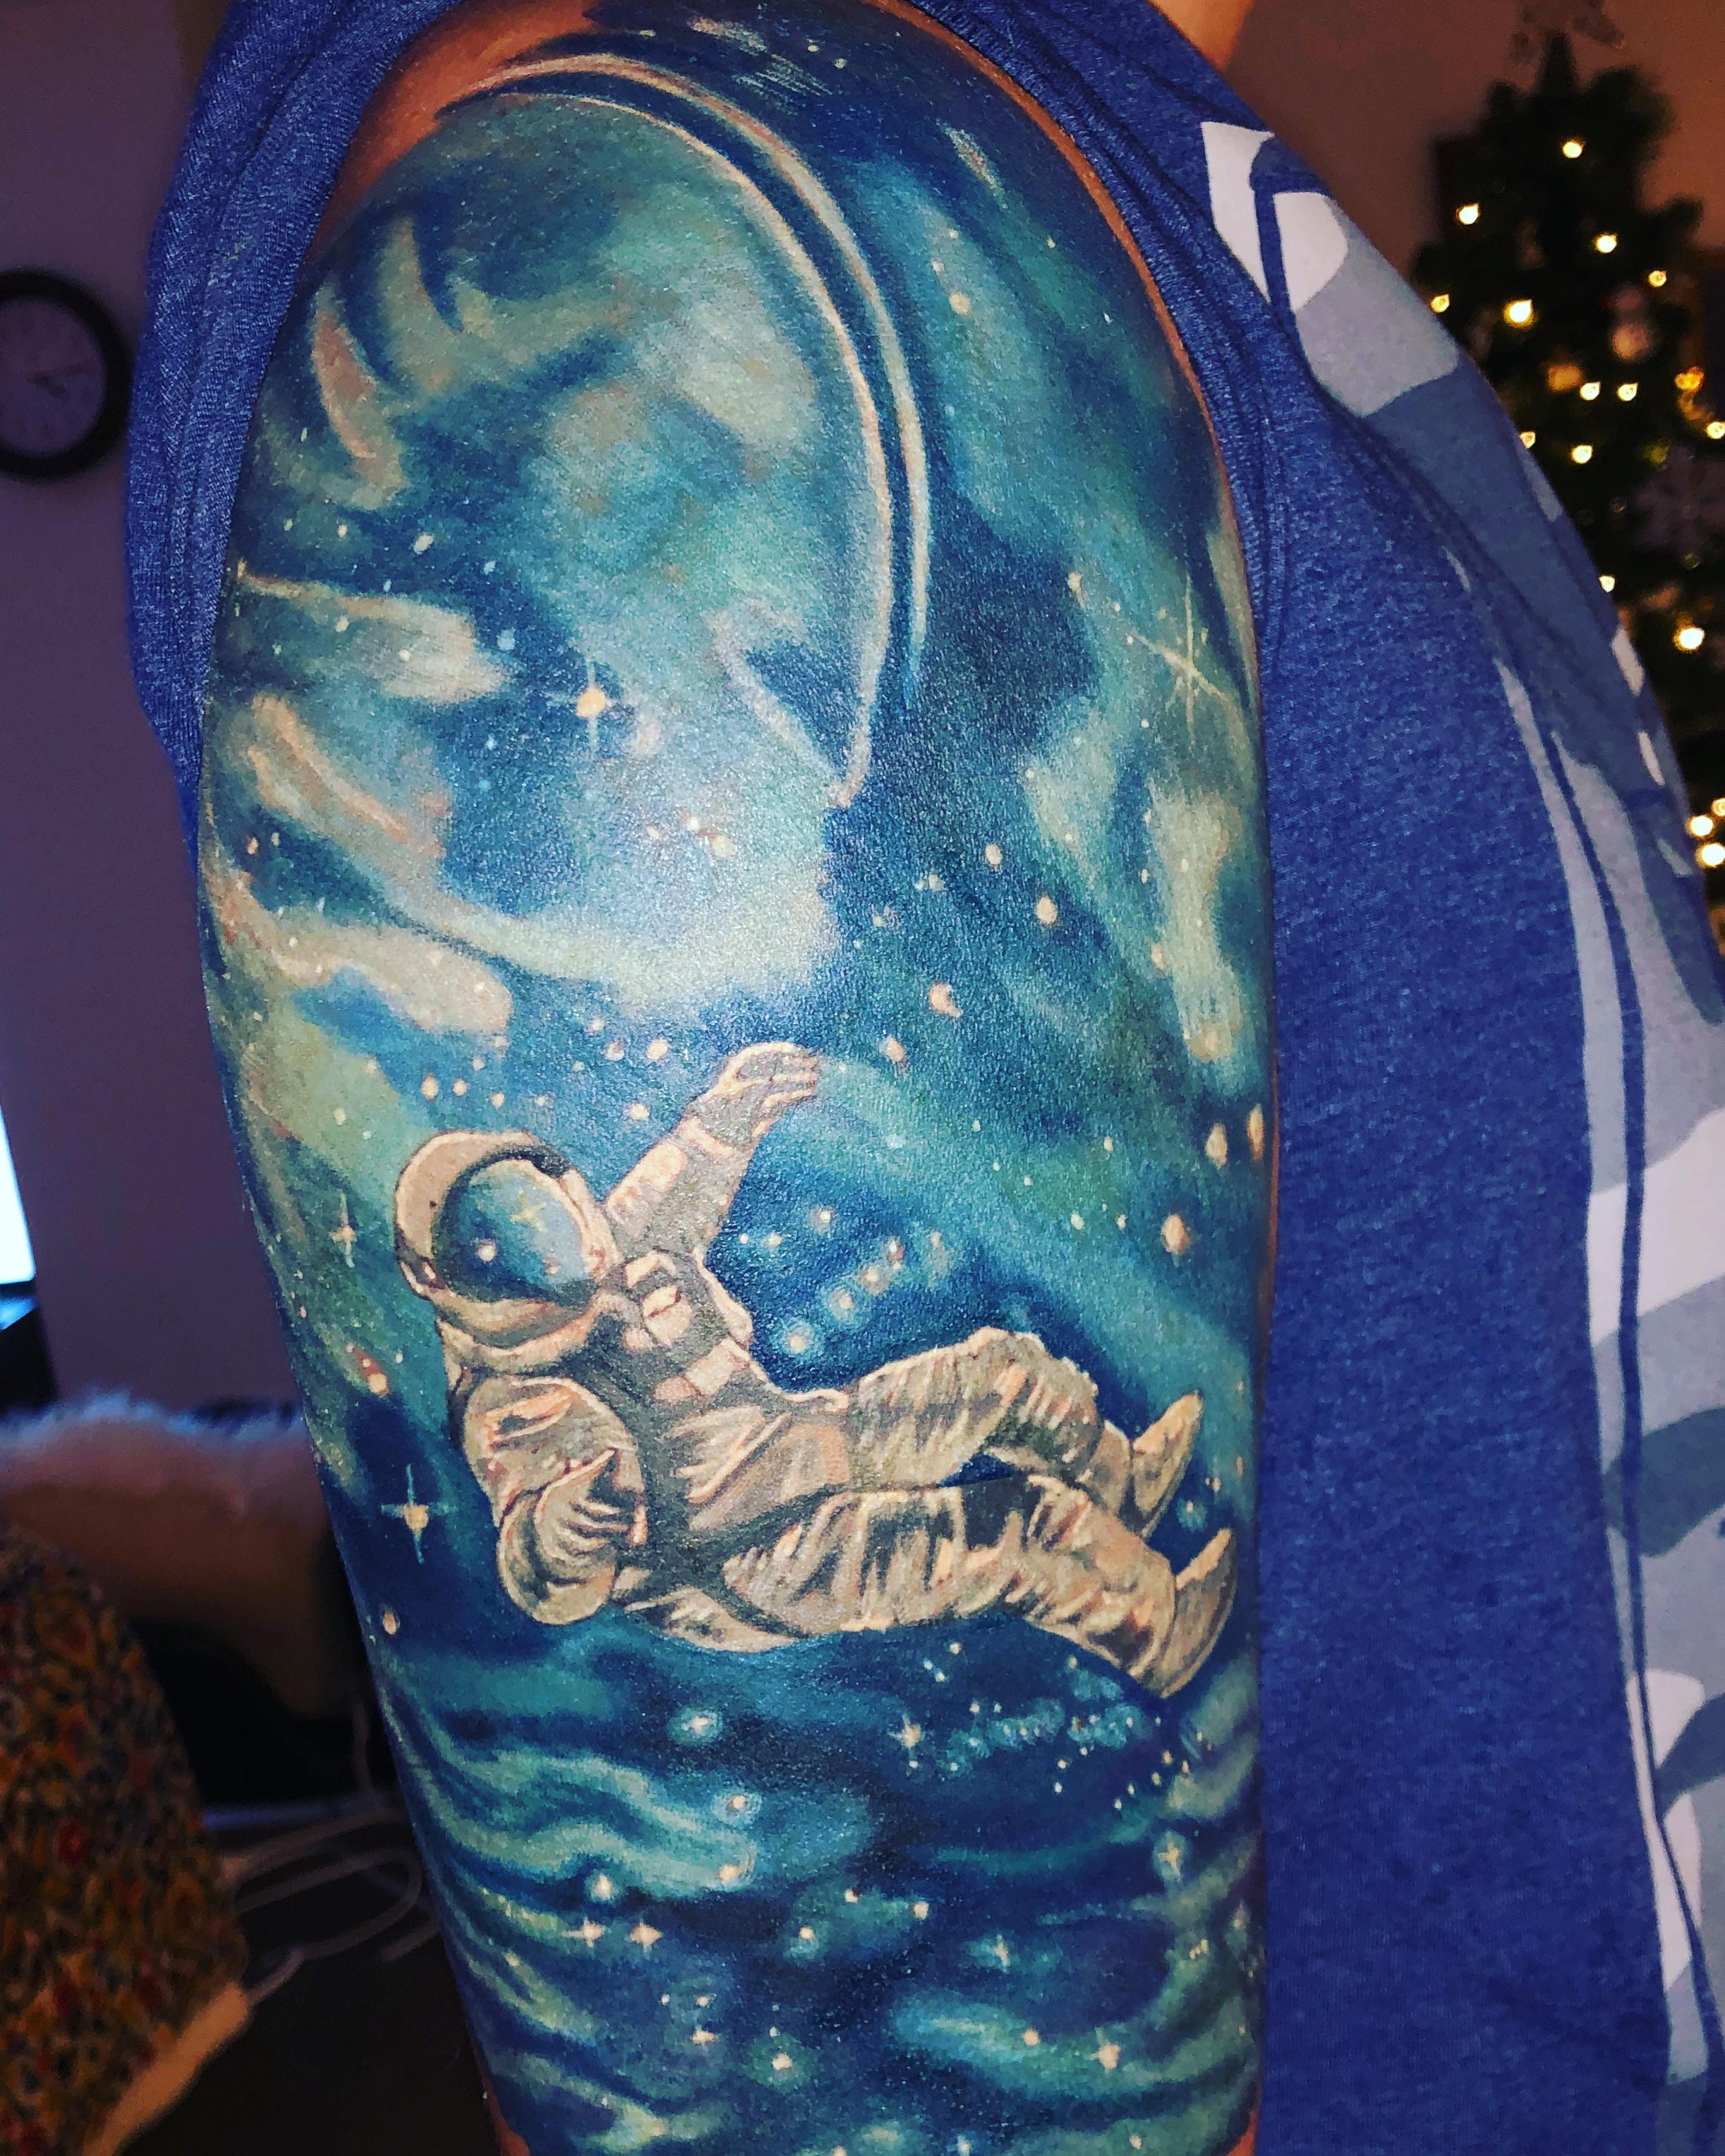 Astronaut Floating In Space Half Sleeve Done Dave S Tattoo Kaiserslautern Tattooantra